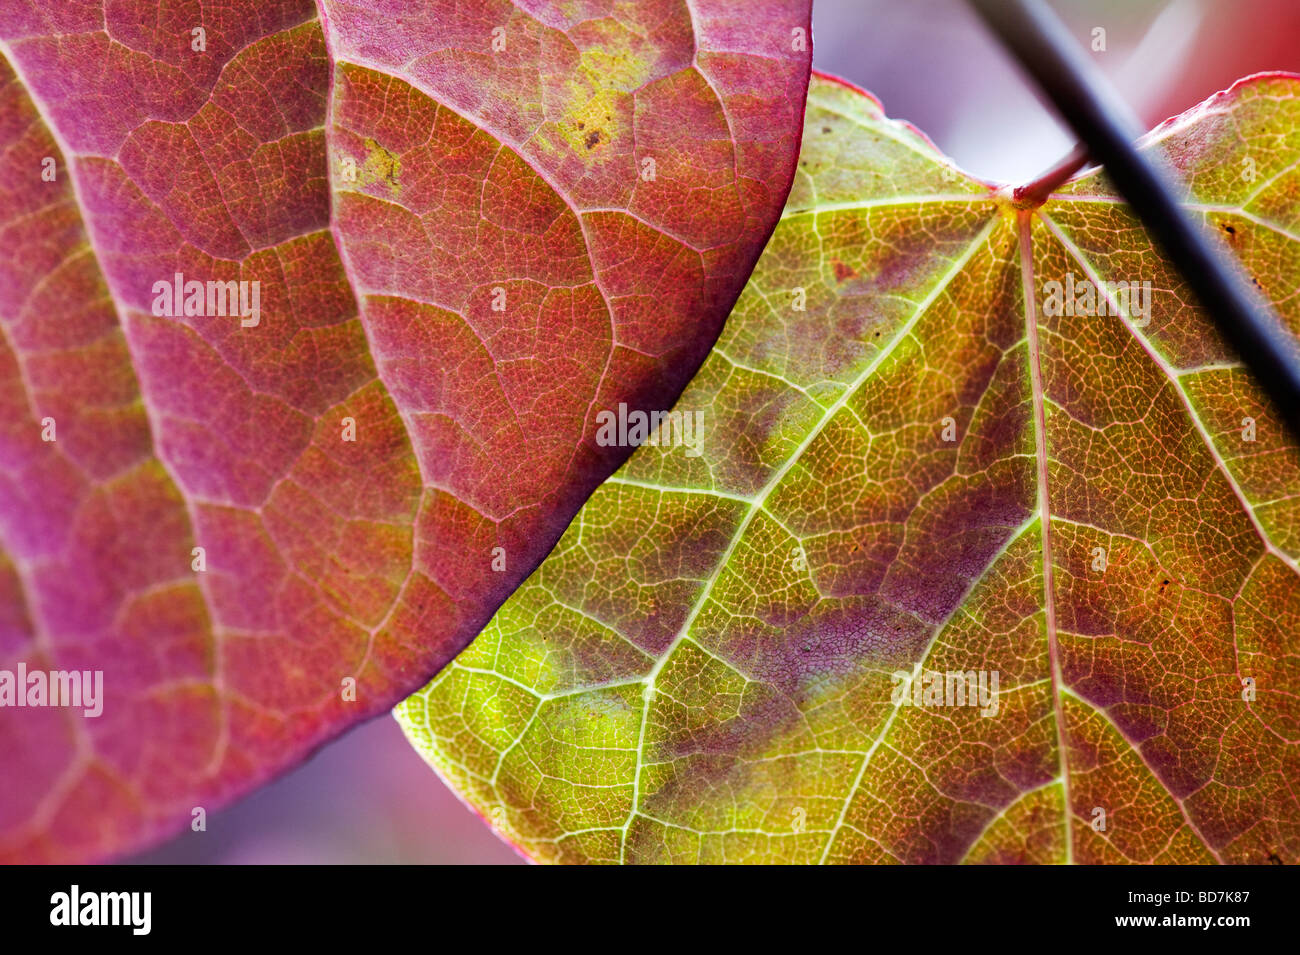 Cercis canadensis 'Forest pansy'. Eastern Redbud tree leaves Photo Stock